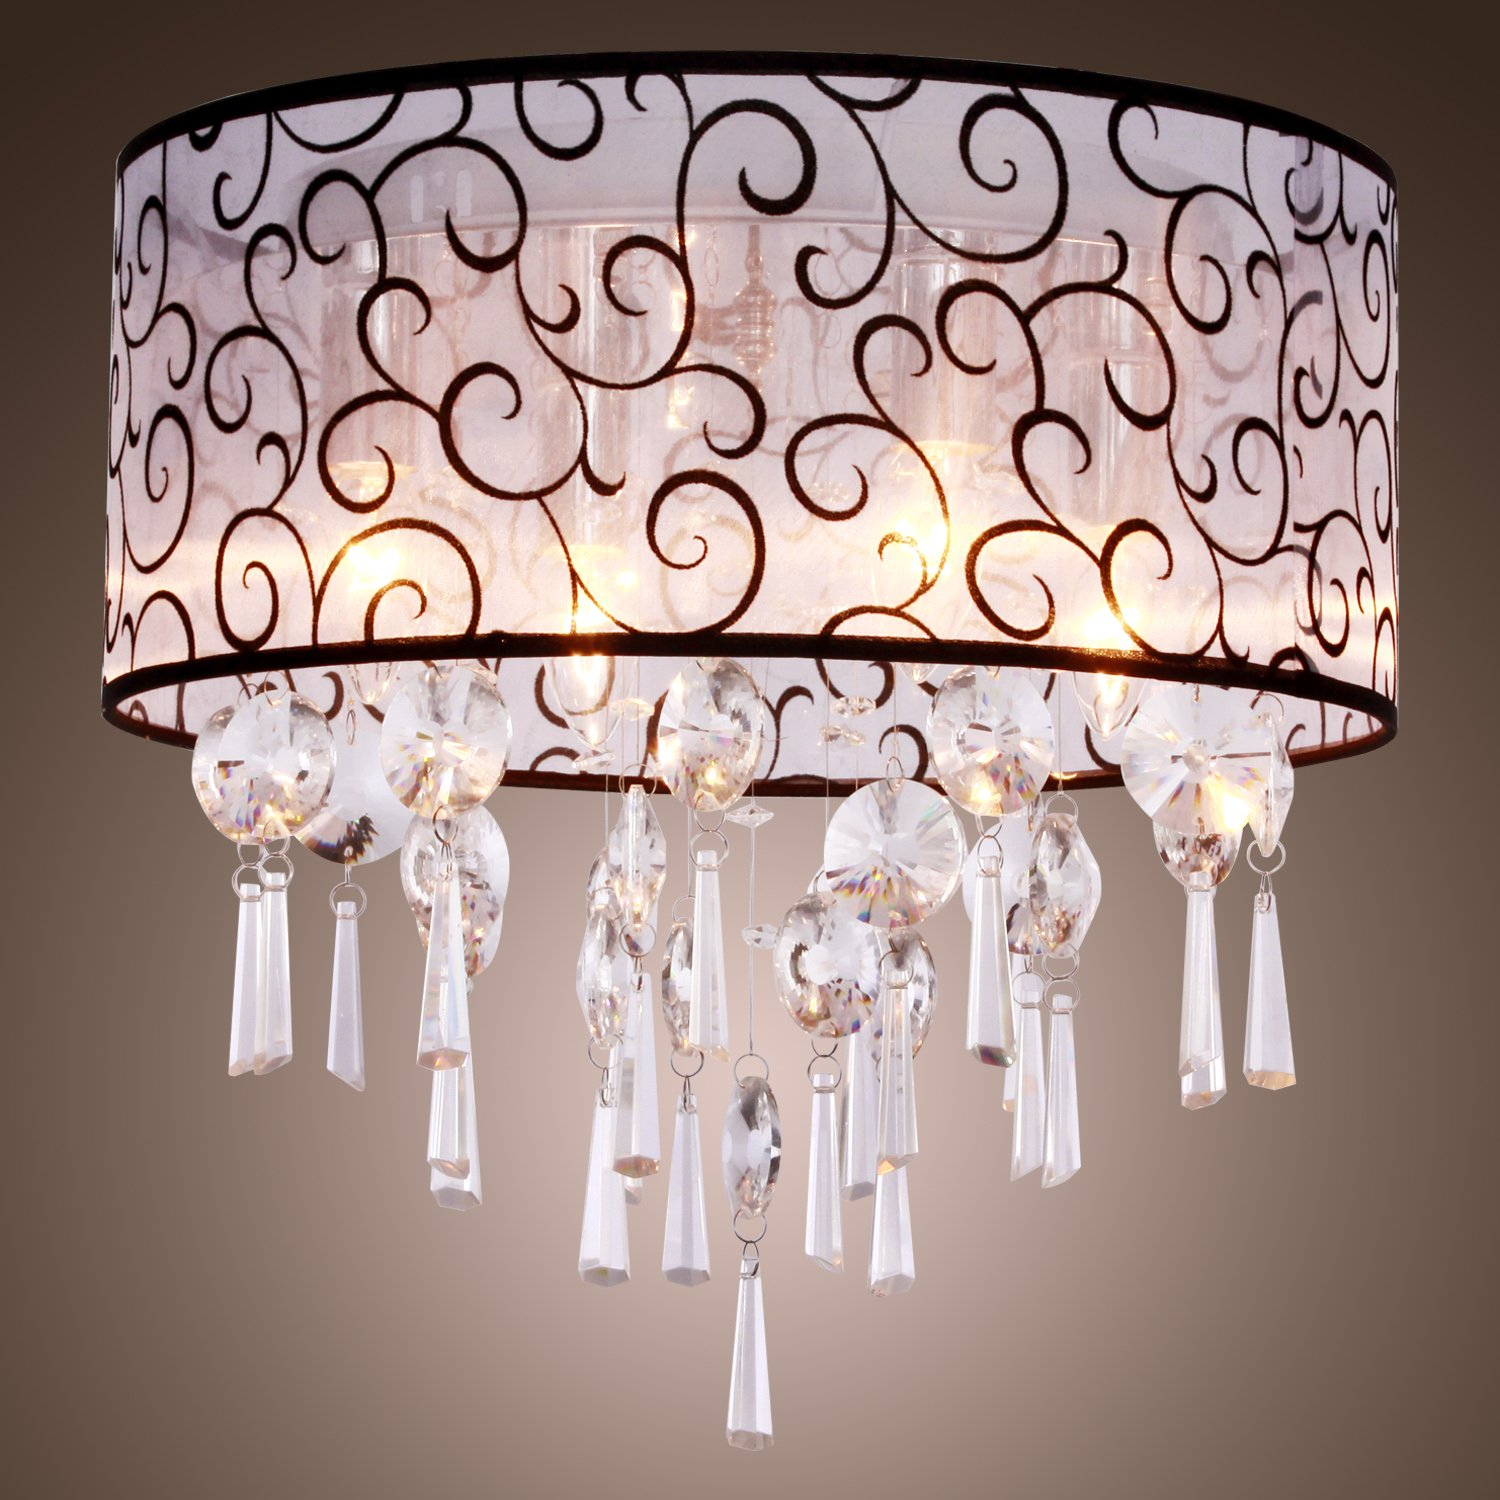 chandelier lighting pendant light bronze crystalline antique company rectangular and crystal image in